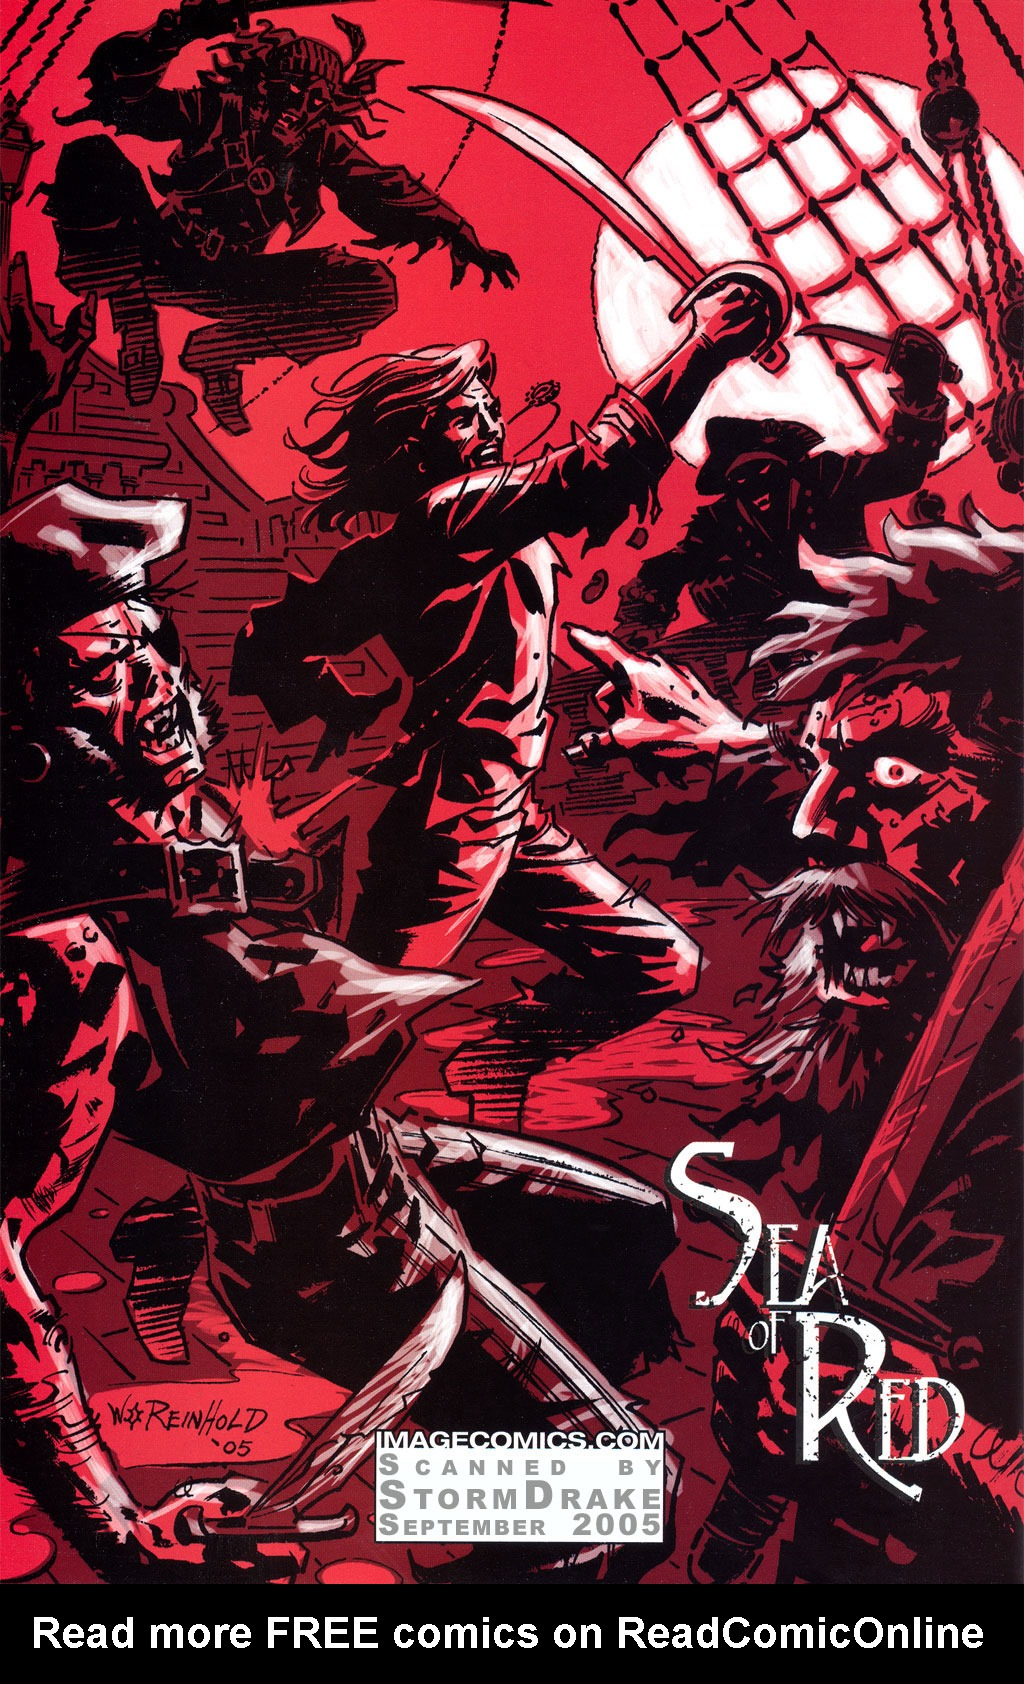 Read online Sea of Red comic -  Issue #4 - 34